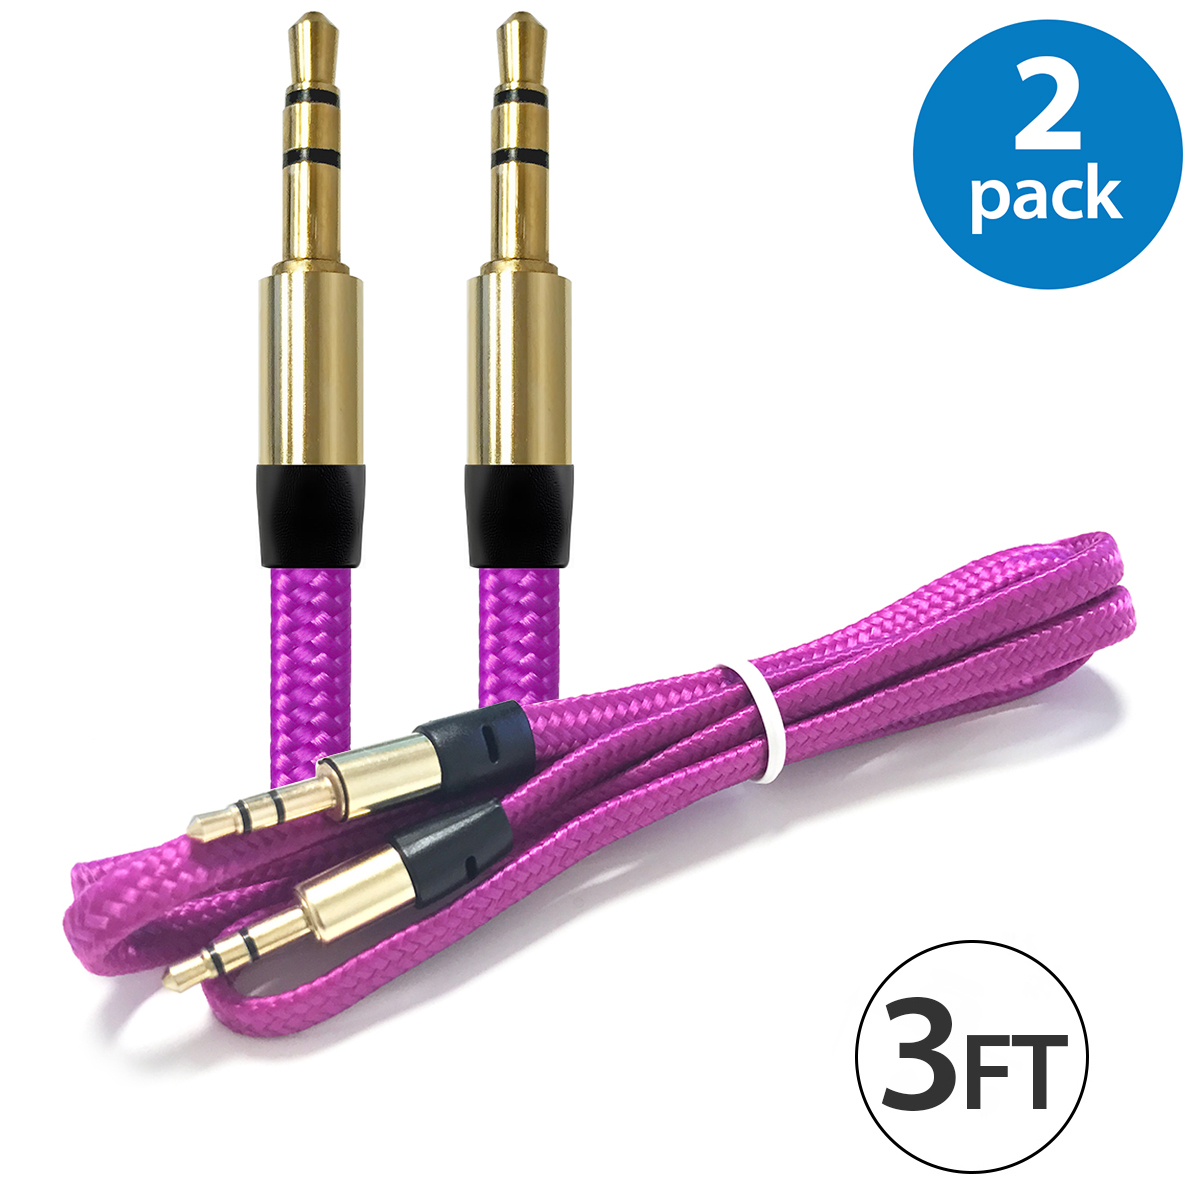 2x Afflux 3.5mm AUX AUXILIARY Cable Male Male Stereo Audio Cord For Android Samsung iPhone iPad iPod PC Computer Laptop Tablet Speaker Home Car System Handheld Game Headset High Quality Hot Pink